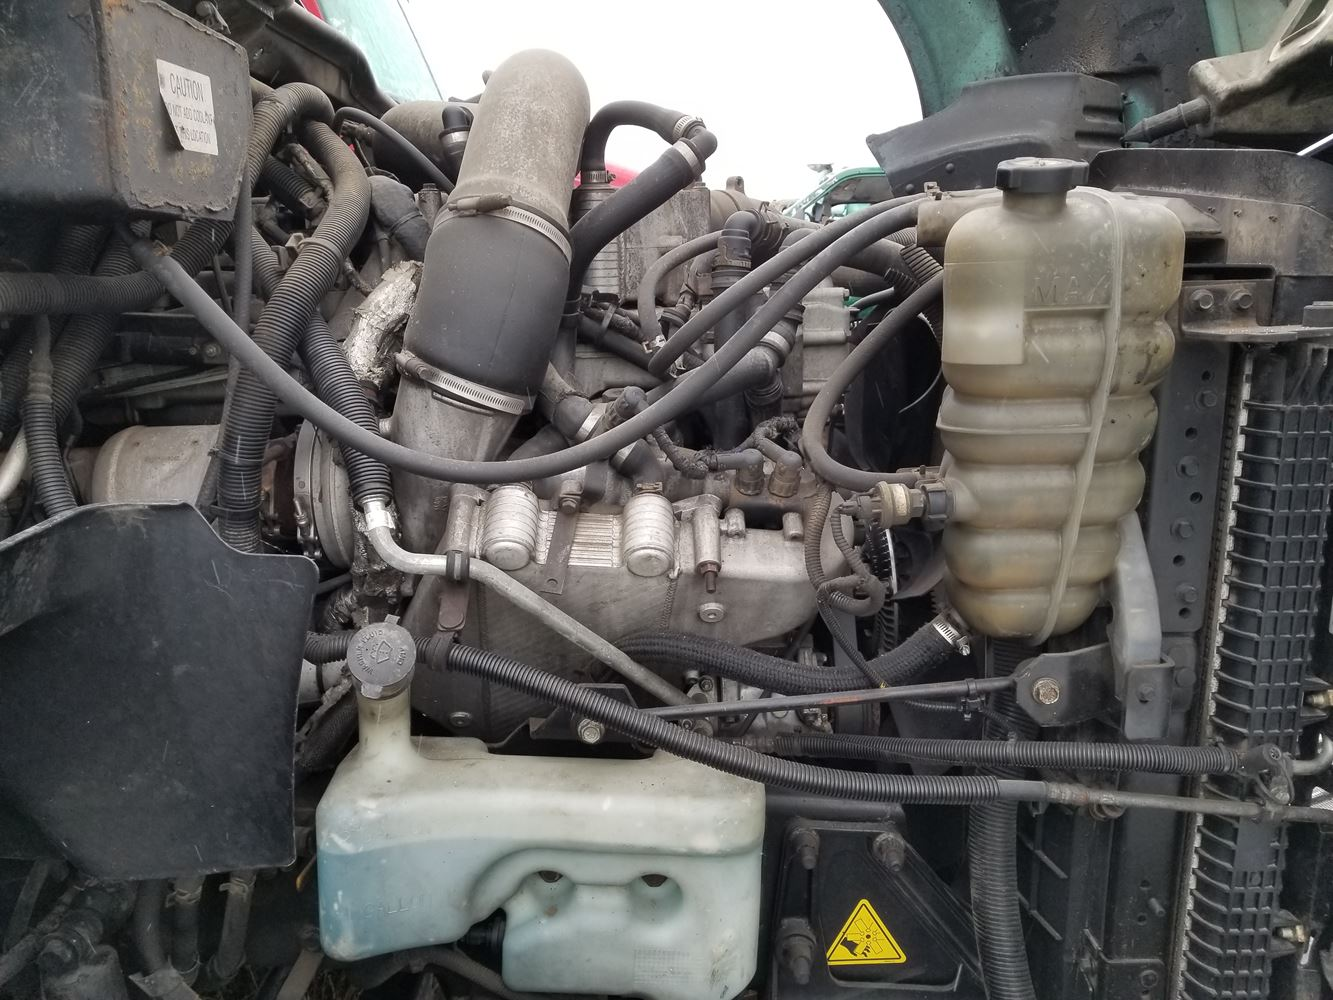 Maxxforce Engine Diagrams Content Resource Of Wiring Diagram T444e Images Gallery